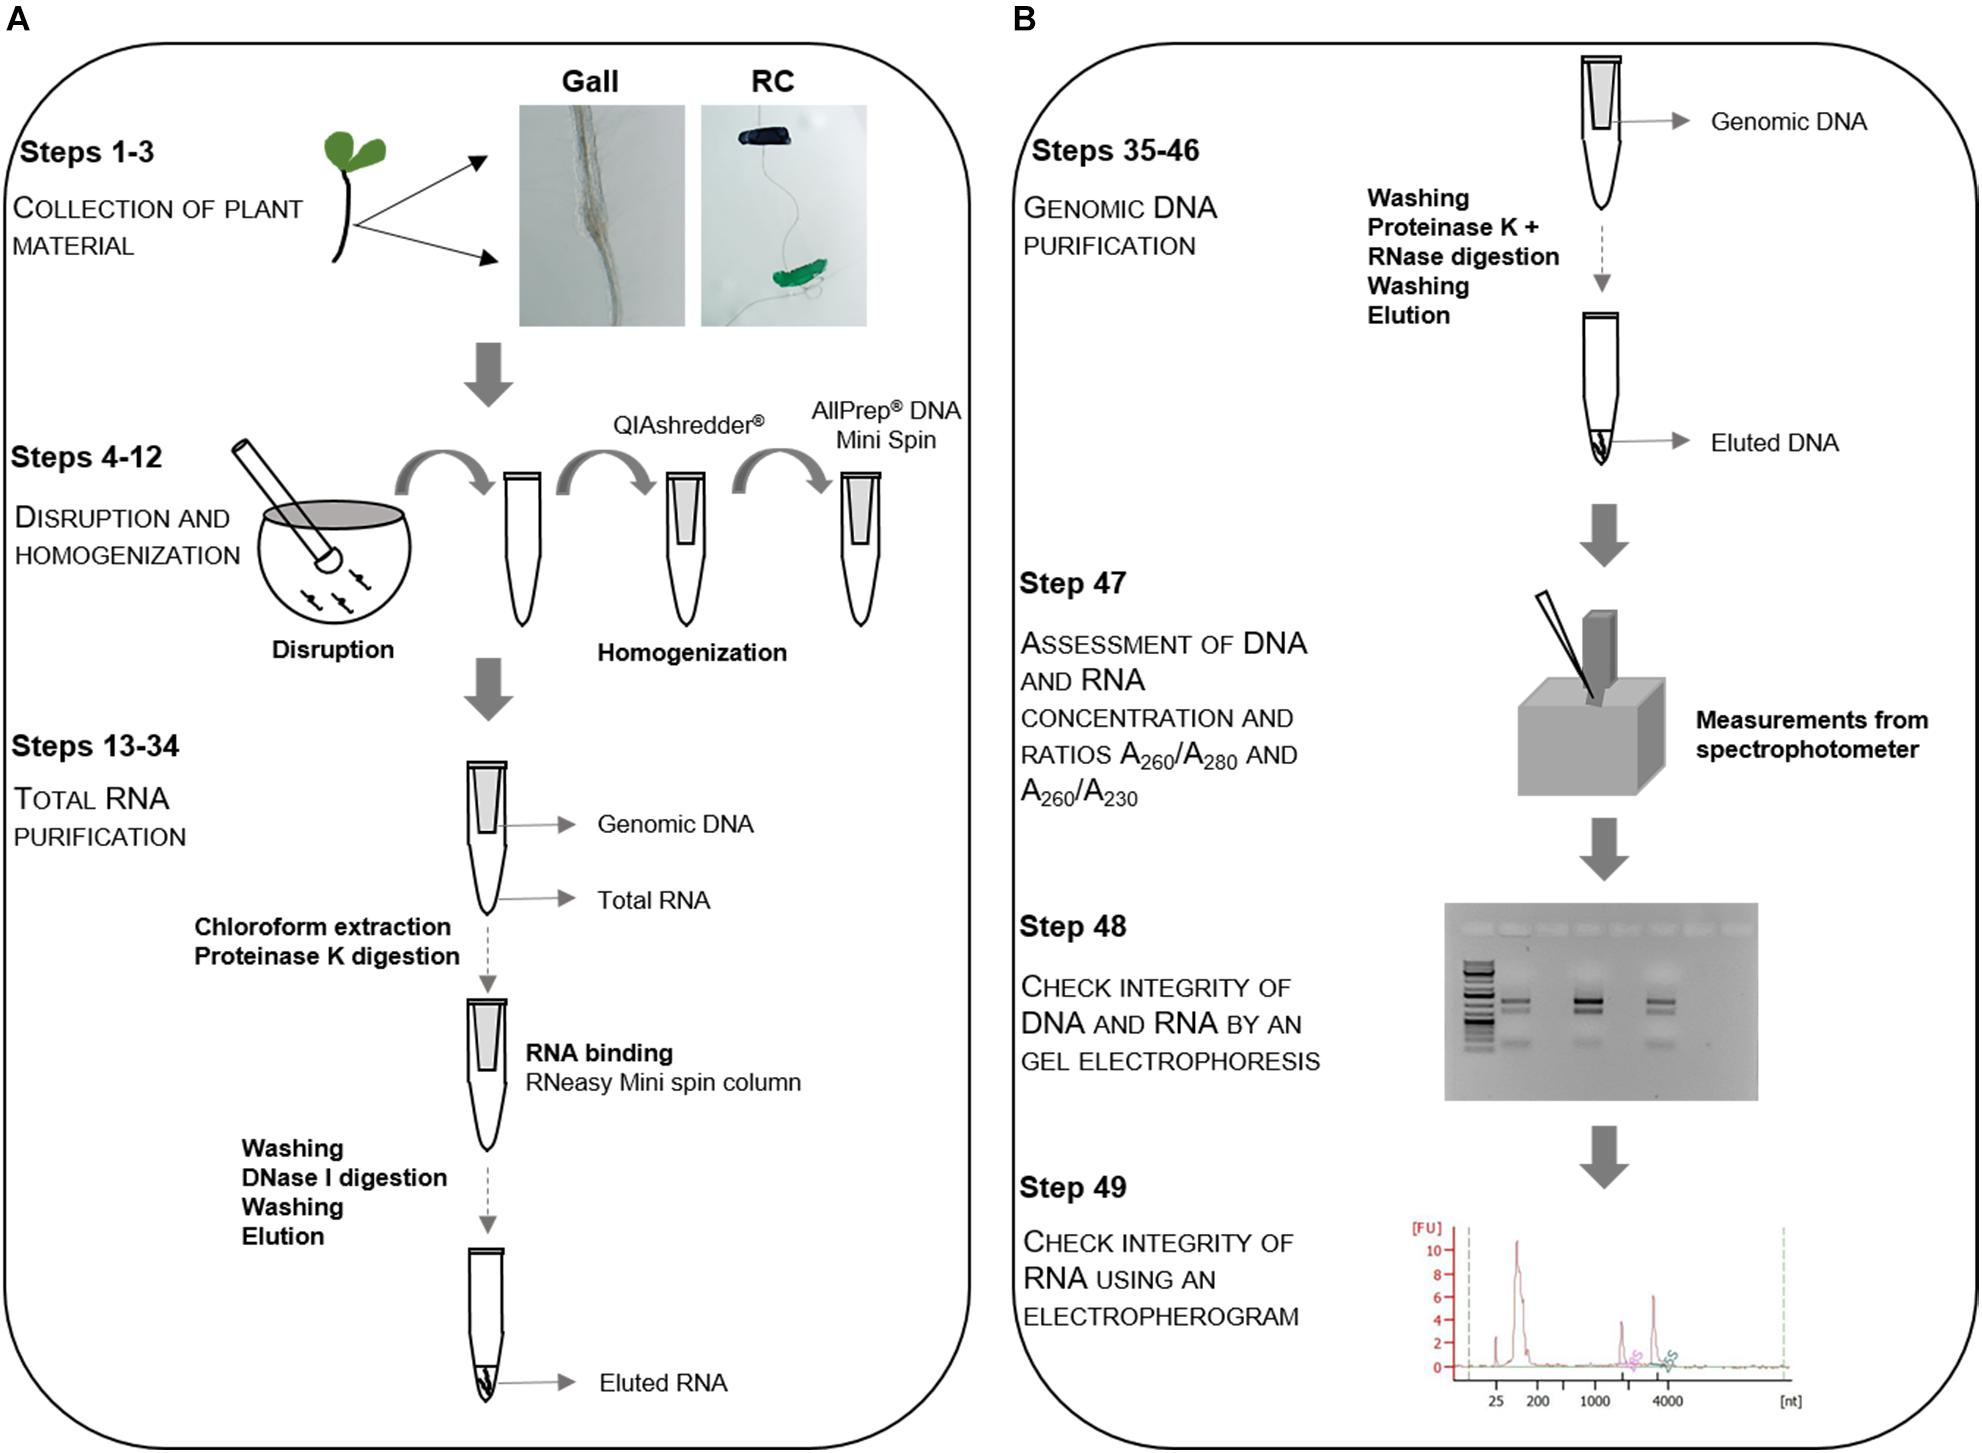 Frontiers All In One High Quality Genomic Dna And Total Rna Extraction From Nematode Induced Galls For High Throughput Sequencing Purposes Plant Science